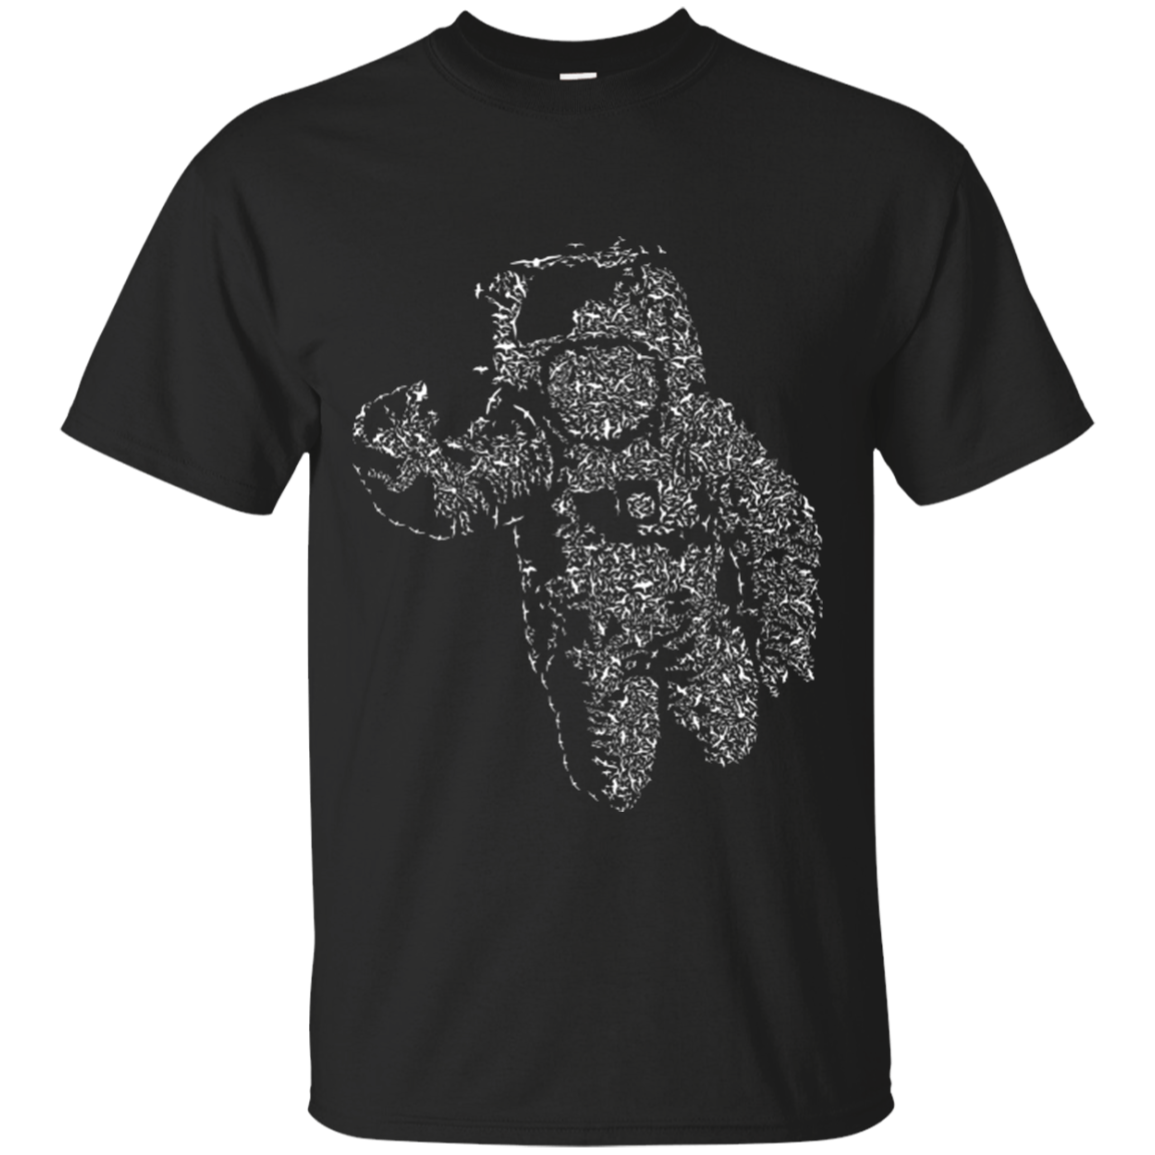 FLYING ASTRONAUT T-SHIRT